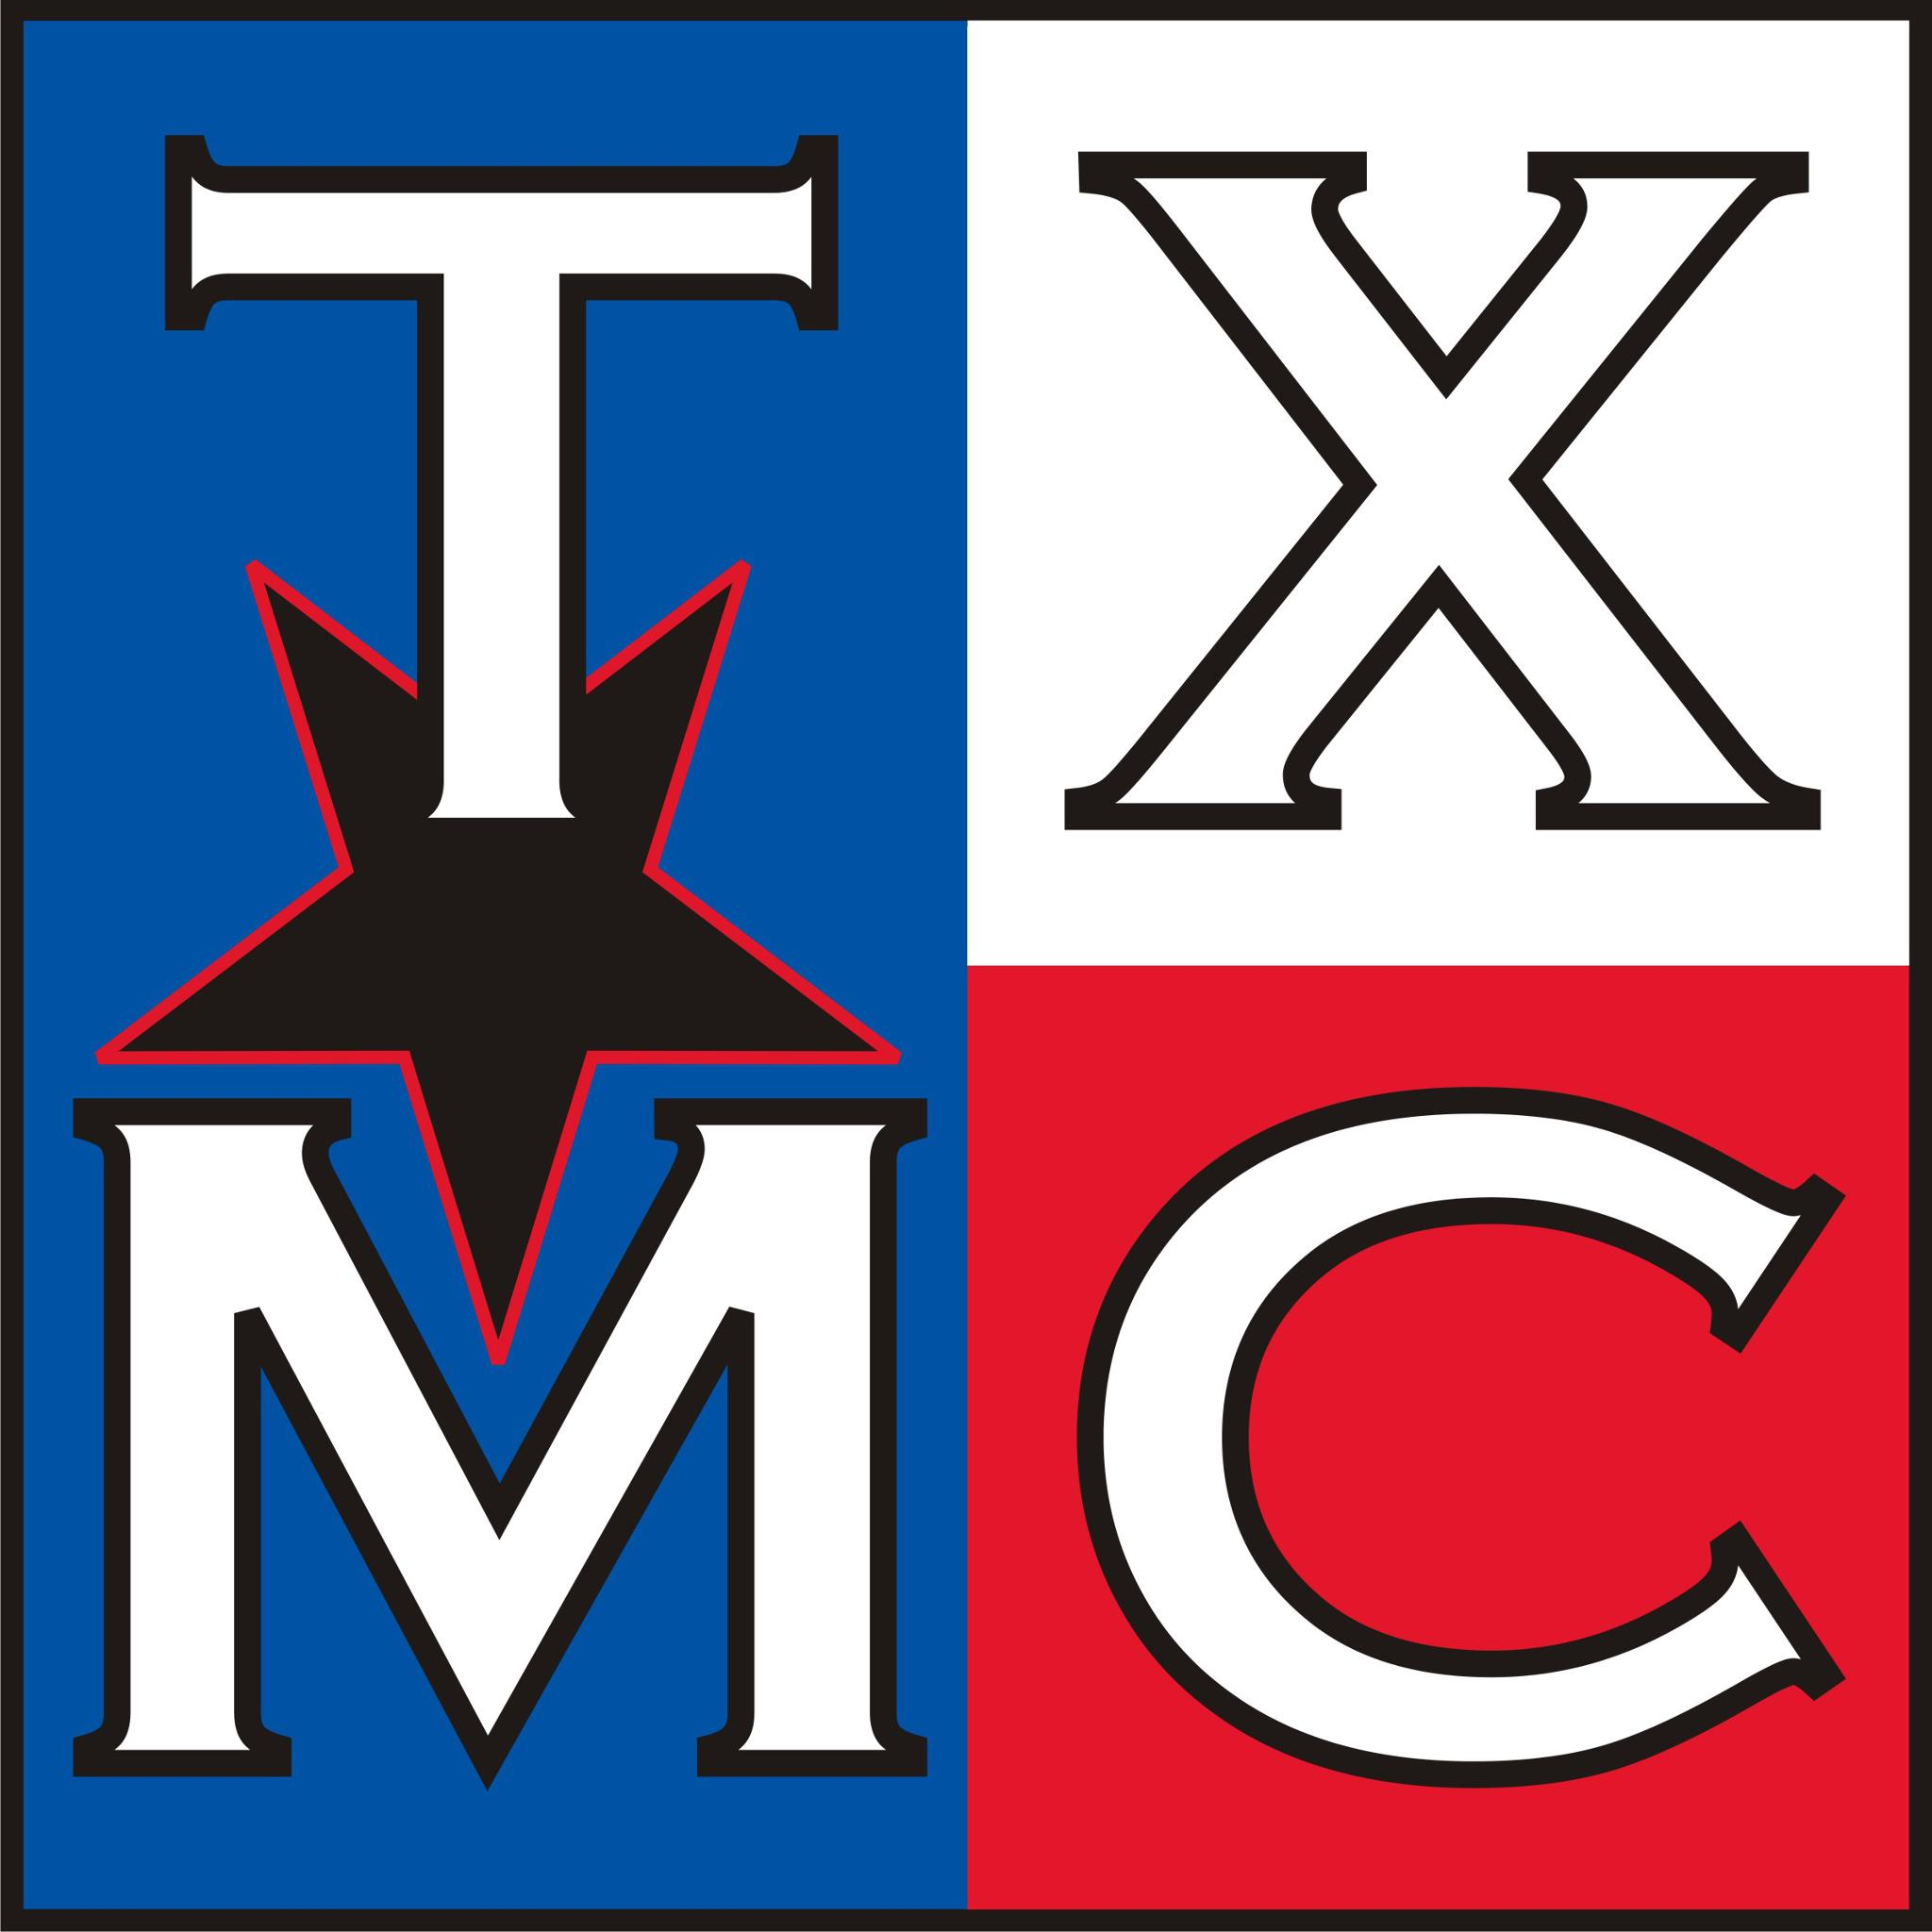 Texas Metal Collective: - Supporting Heavy Metal musicians in Texas